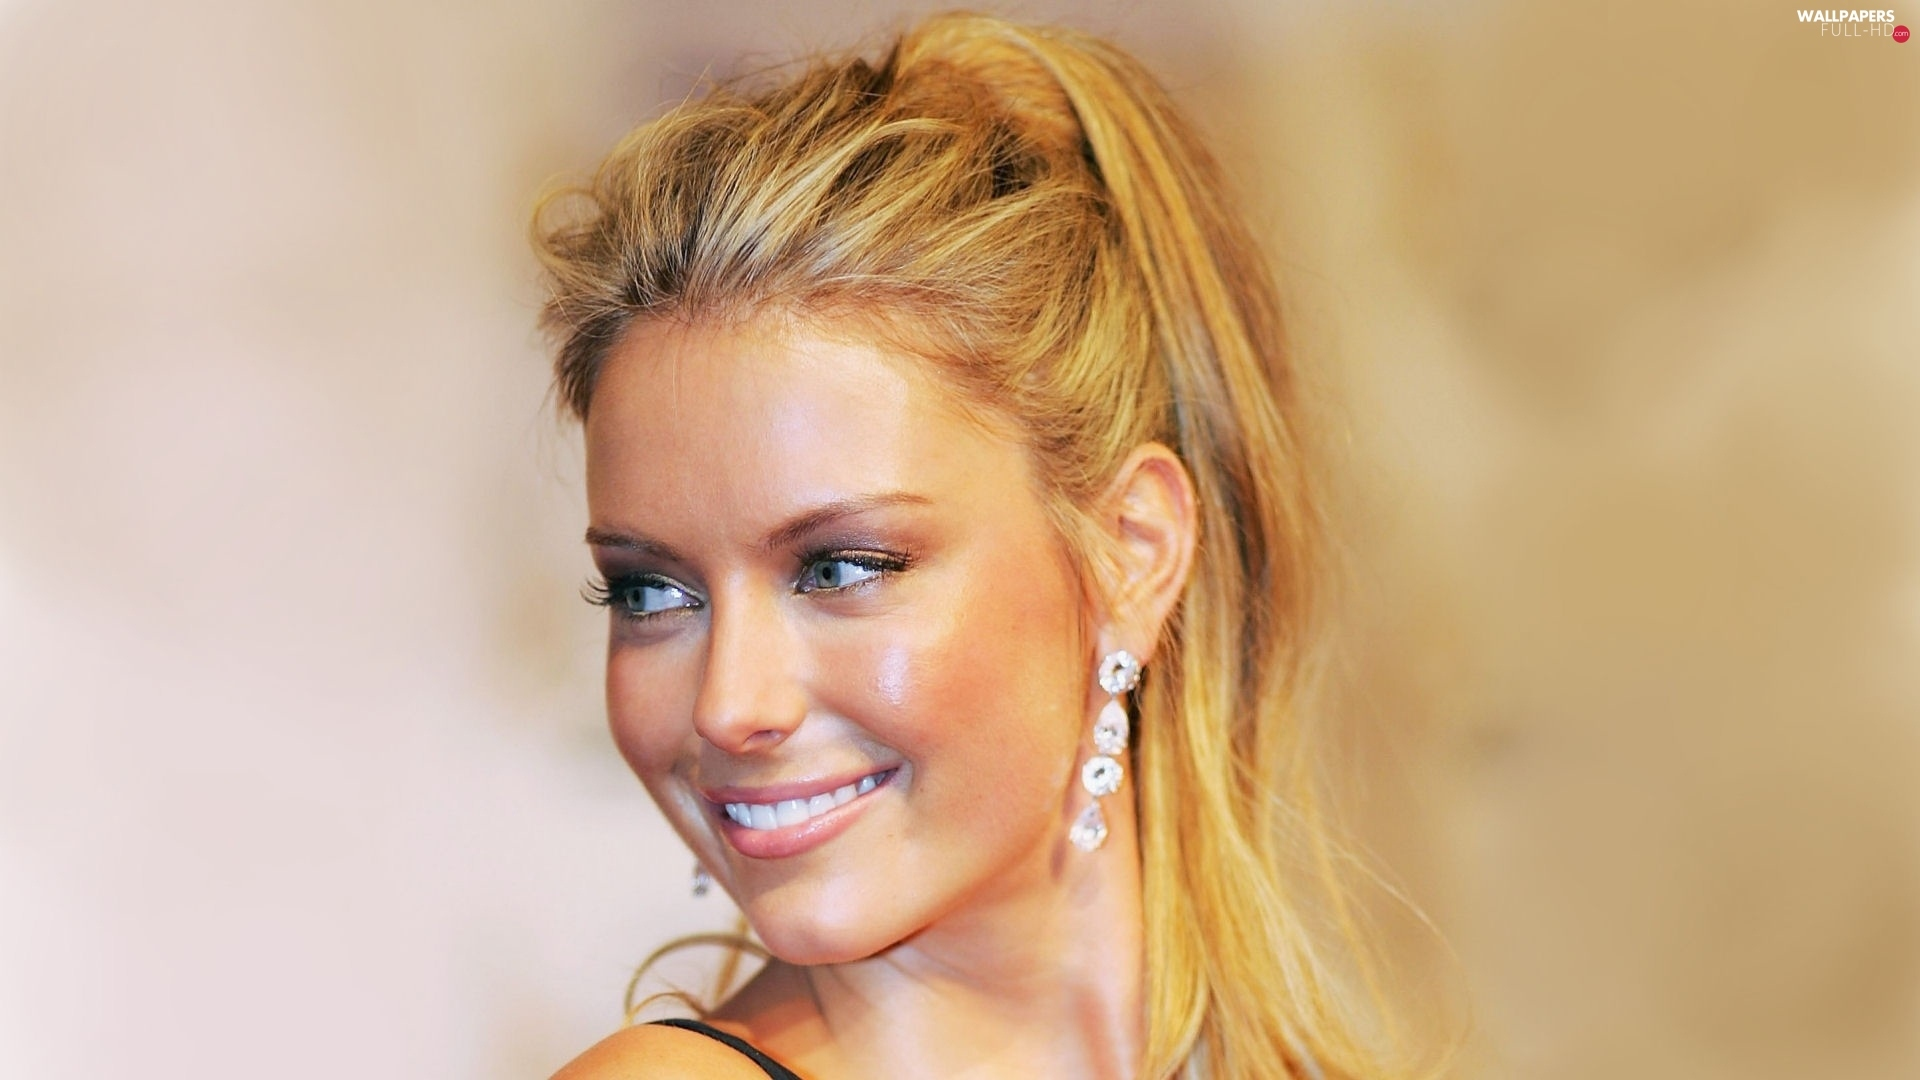 ear-ring, Smile, Jennifer Hawkins